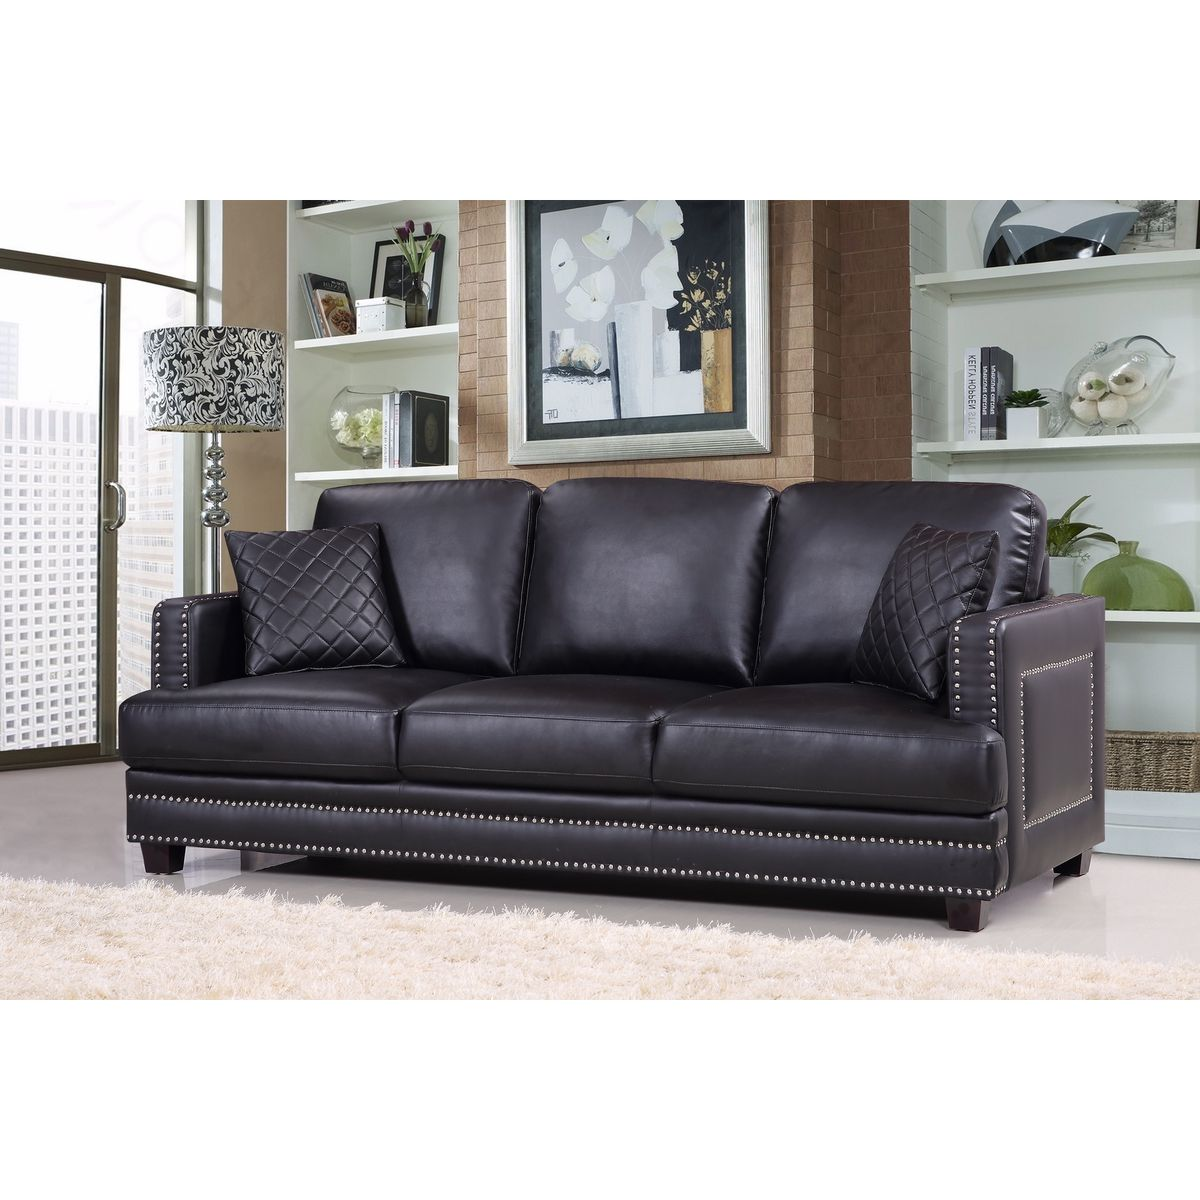 black leather sofa with nailheads natuzzi at costco meridian furniture 655bl s ferrara w silver nailhead quilted pillows